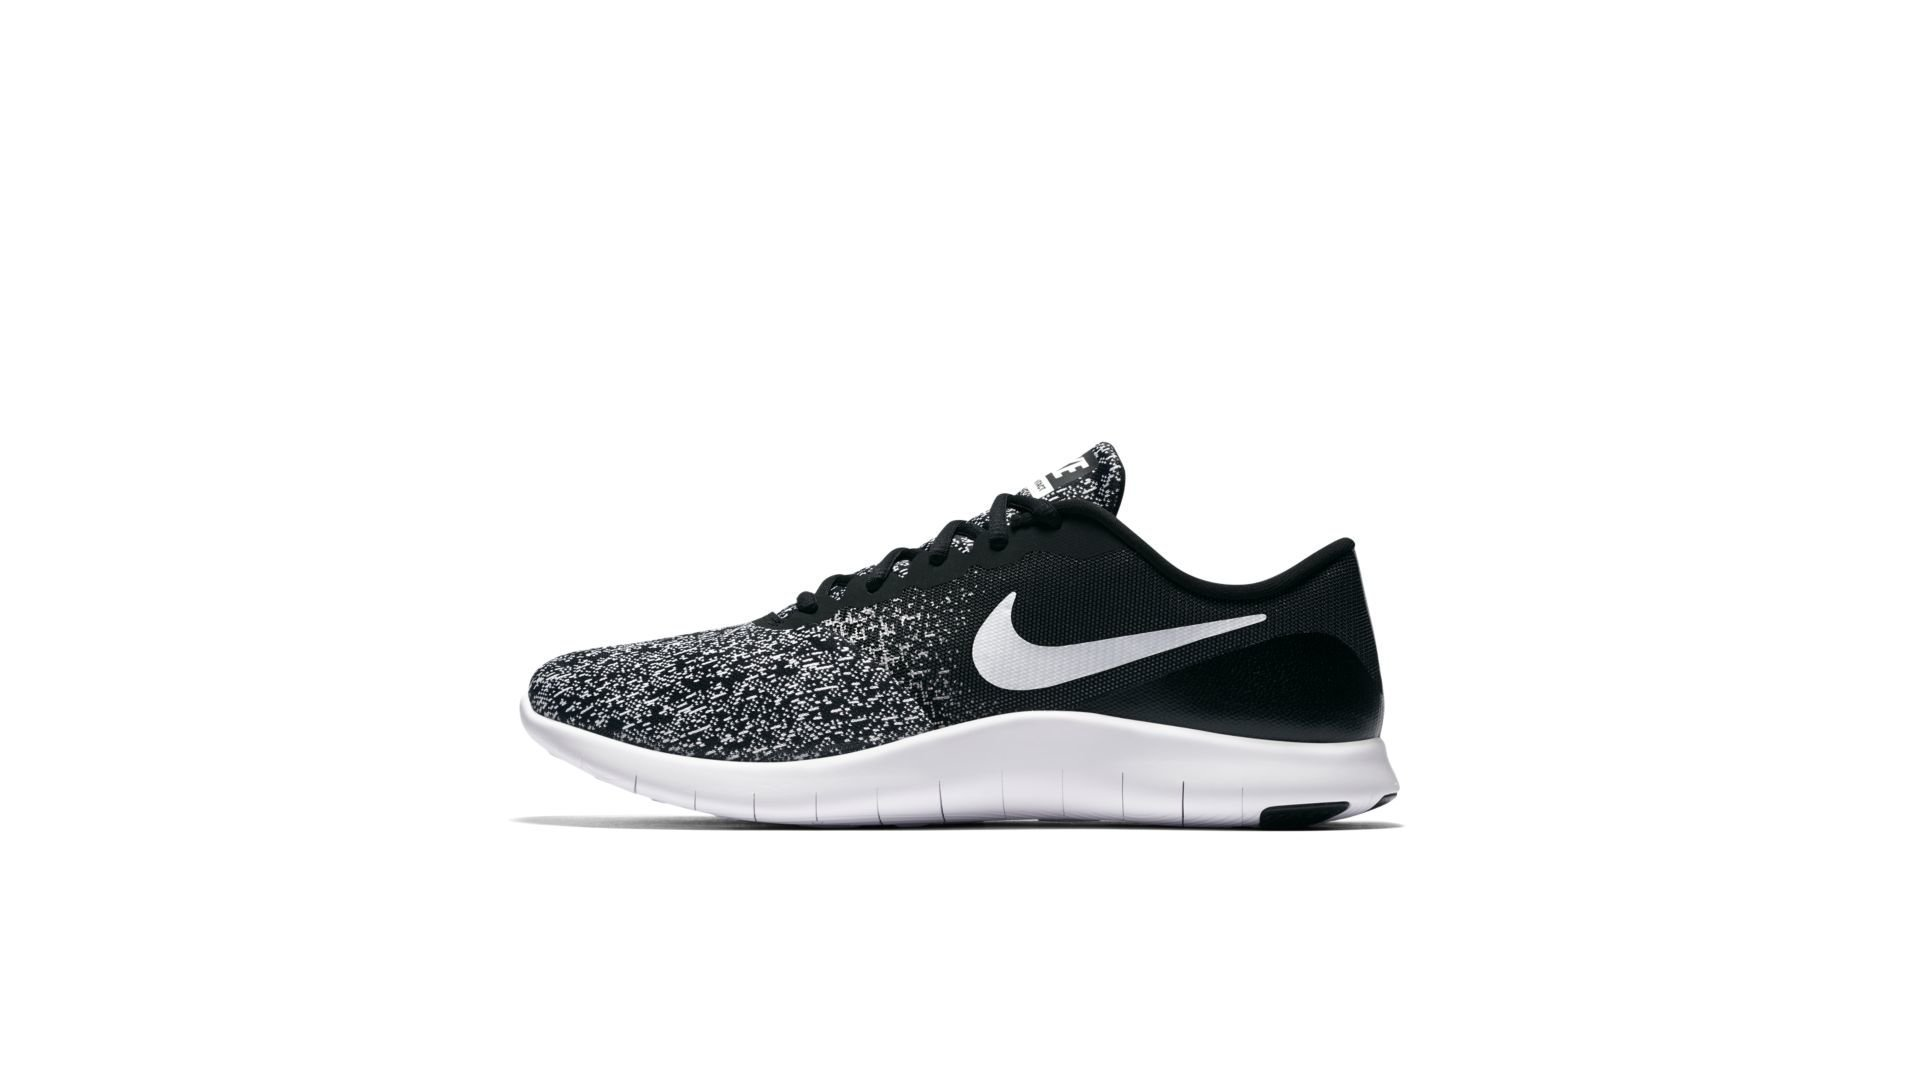 Nike Flex Contact Black White (908983-001)